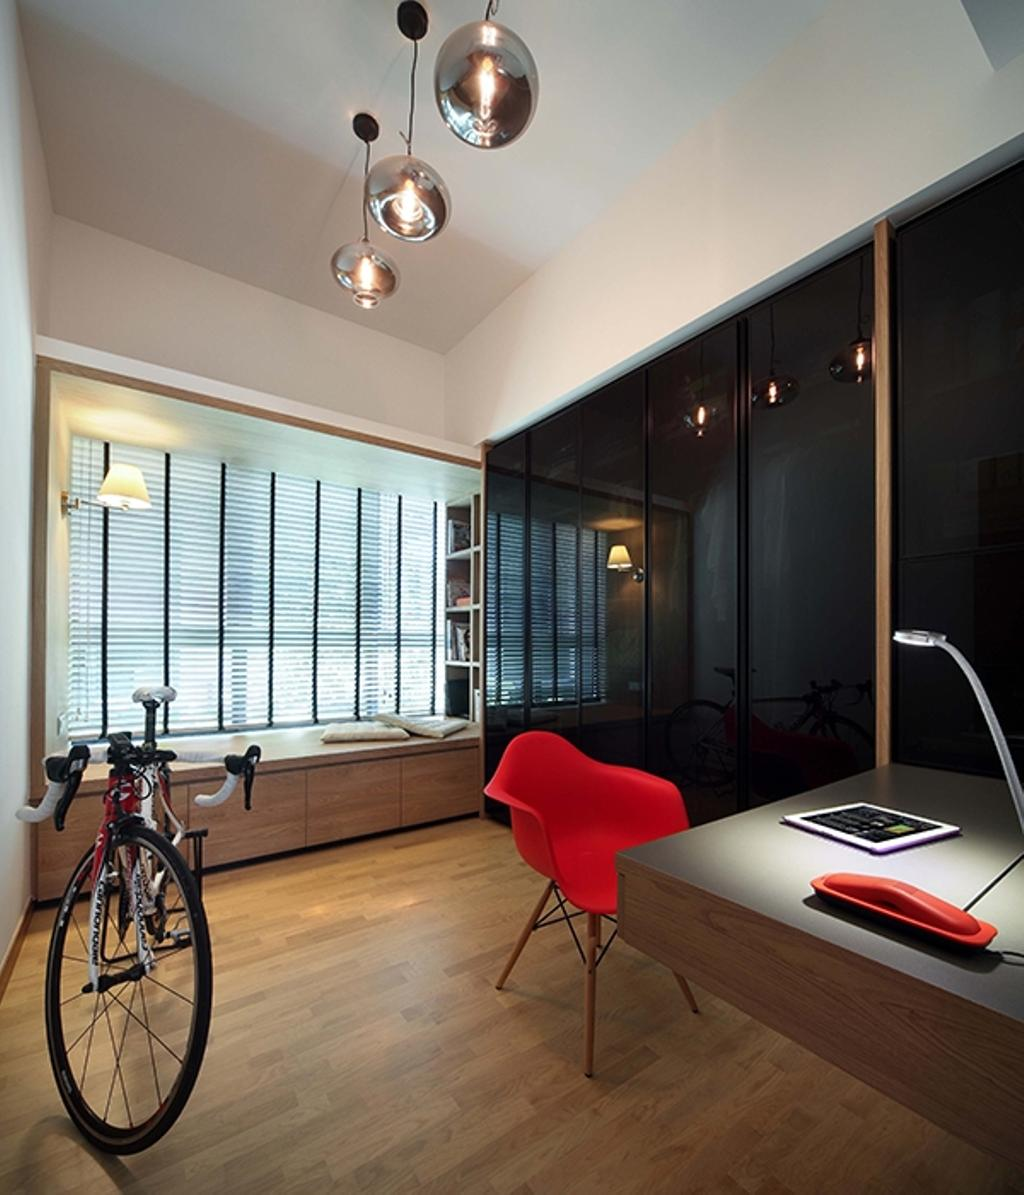 Modern, Condo, Study, The Gale, Interior Designer, The Scientist, Scandinavian, Pendant Lamp, Handing Lamp, Round Pendant Lamp, Eames Chair, Dsw Chair, Red Dsw Chair, Wood Floor, Wooden Flooring, Wardrobe, Bay Window, Blinds, Venetian Blinds, Bicycle, Chair, Furniture, Couch